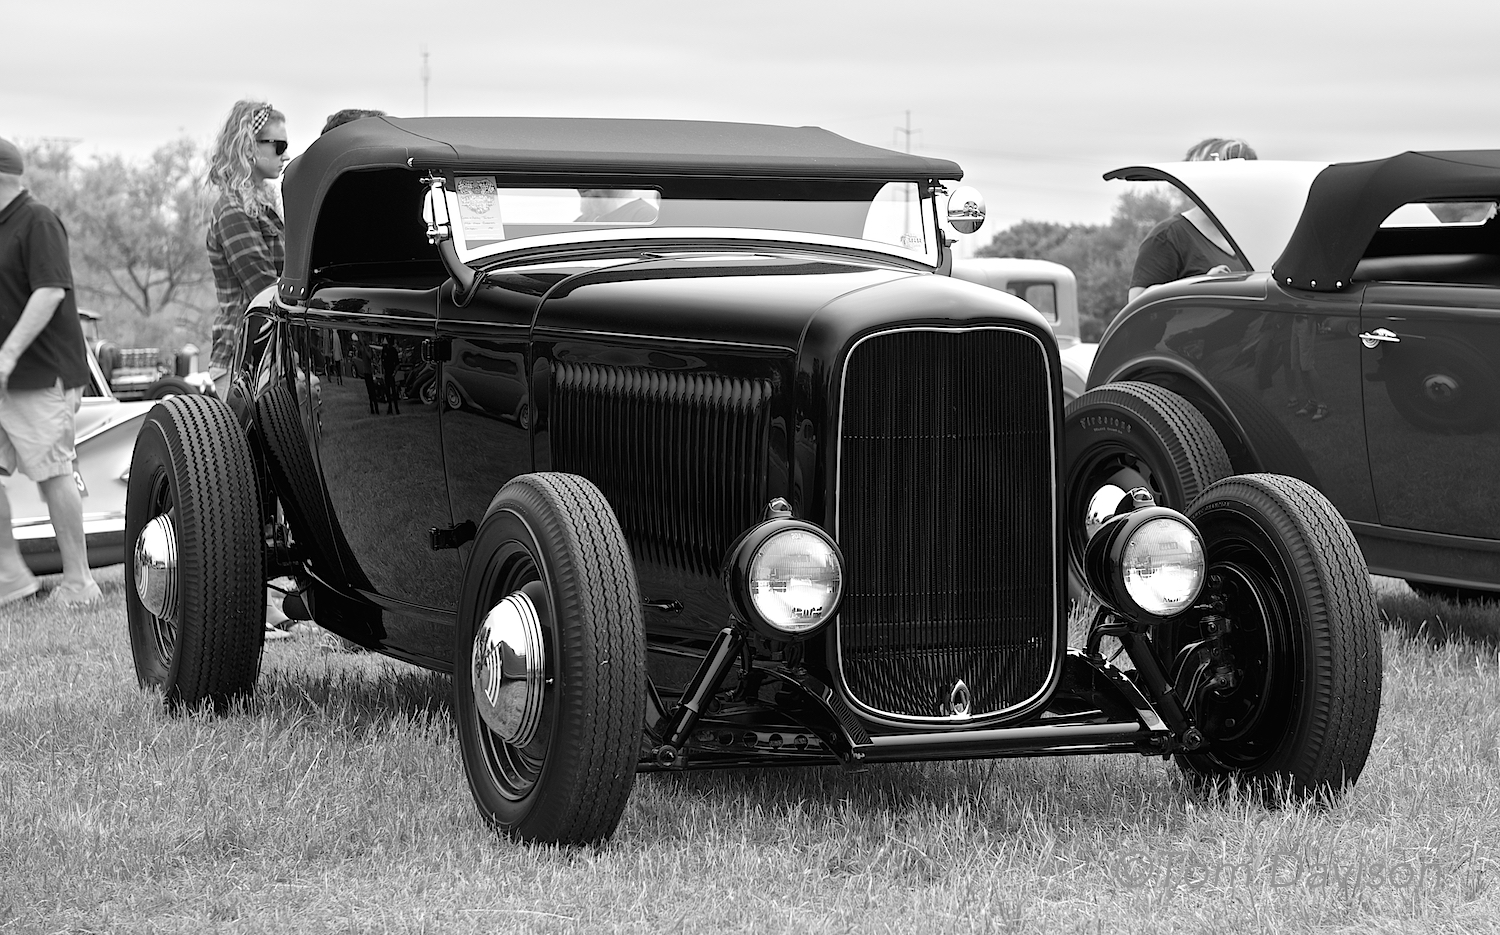 ANOTHER 1932 Ford roadster. Hot rodders really love 1932 Fords.